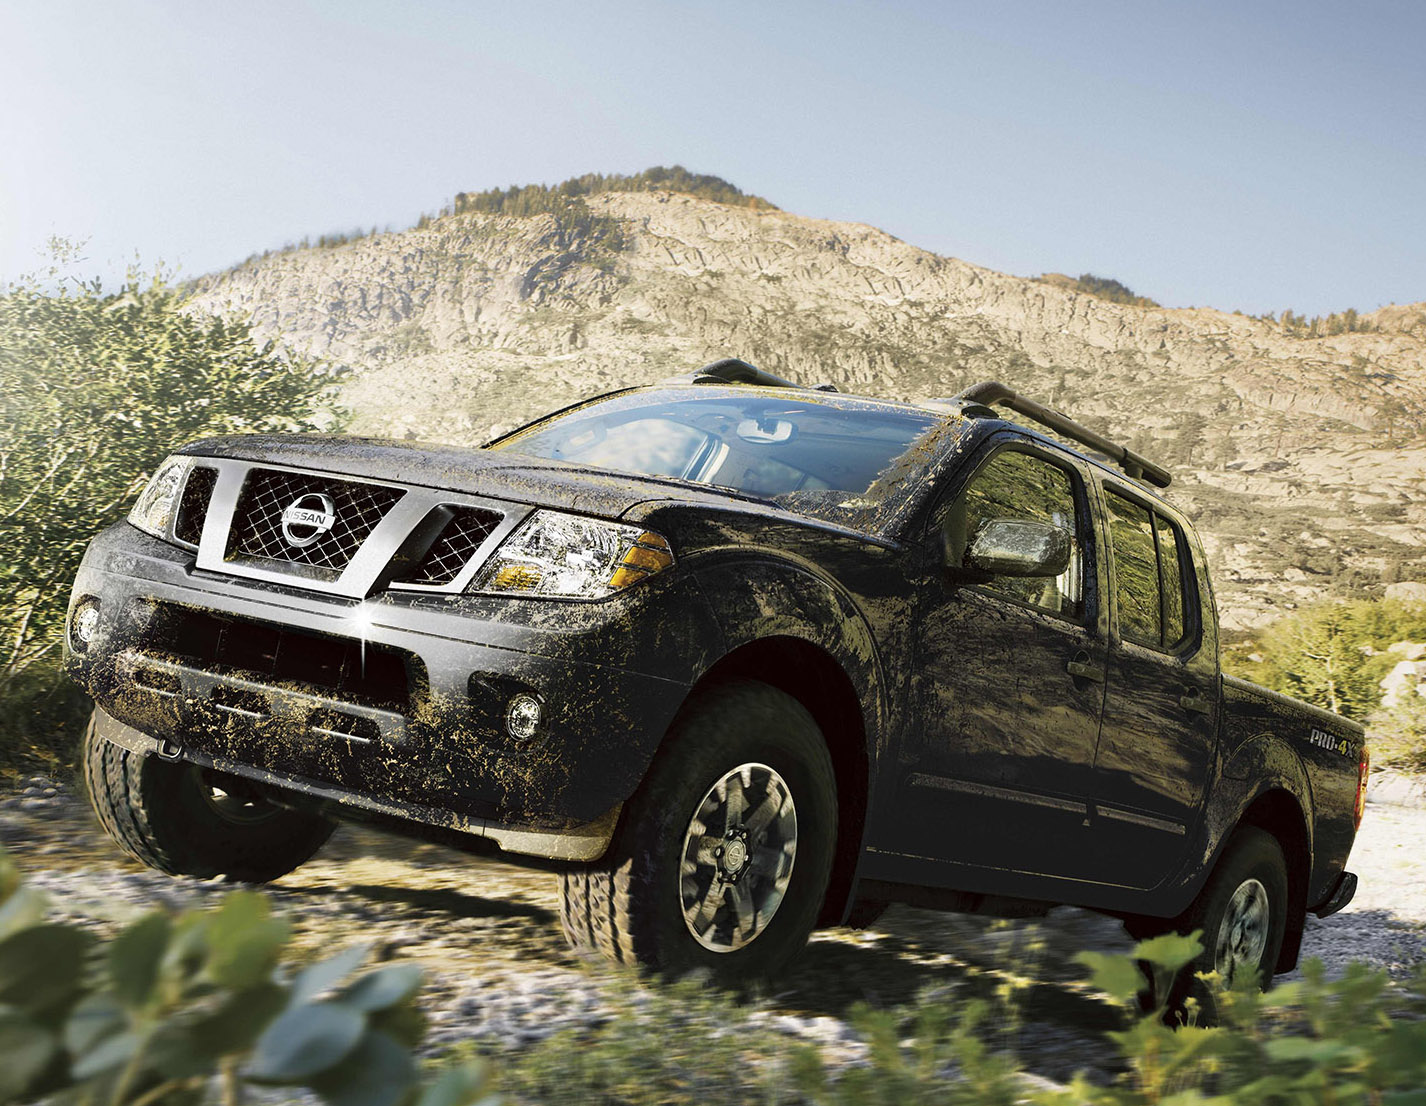 Nissan's Frontier Pro-4X has what off-road explorer needs